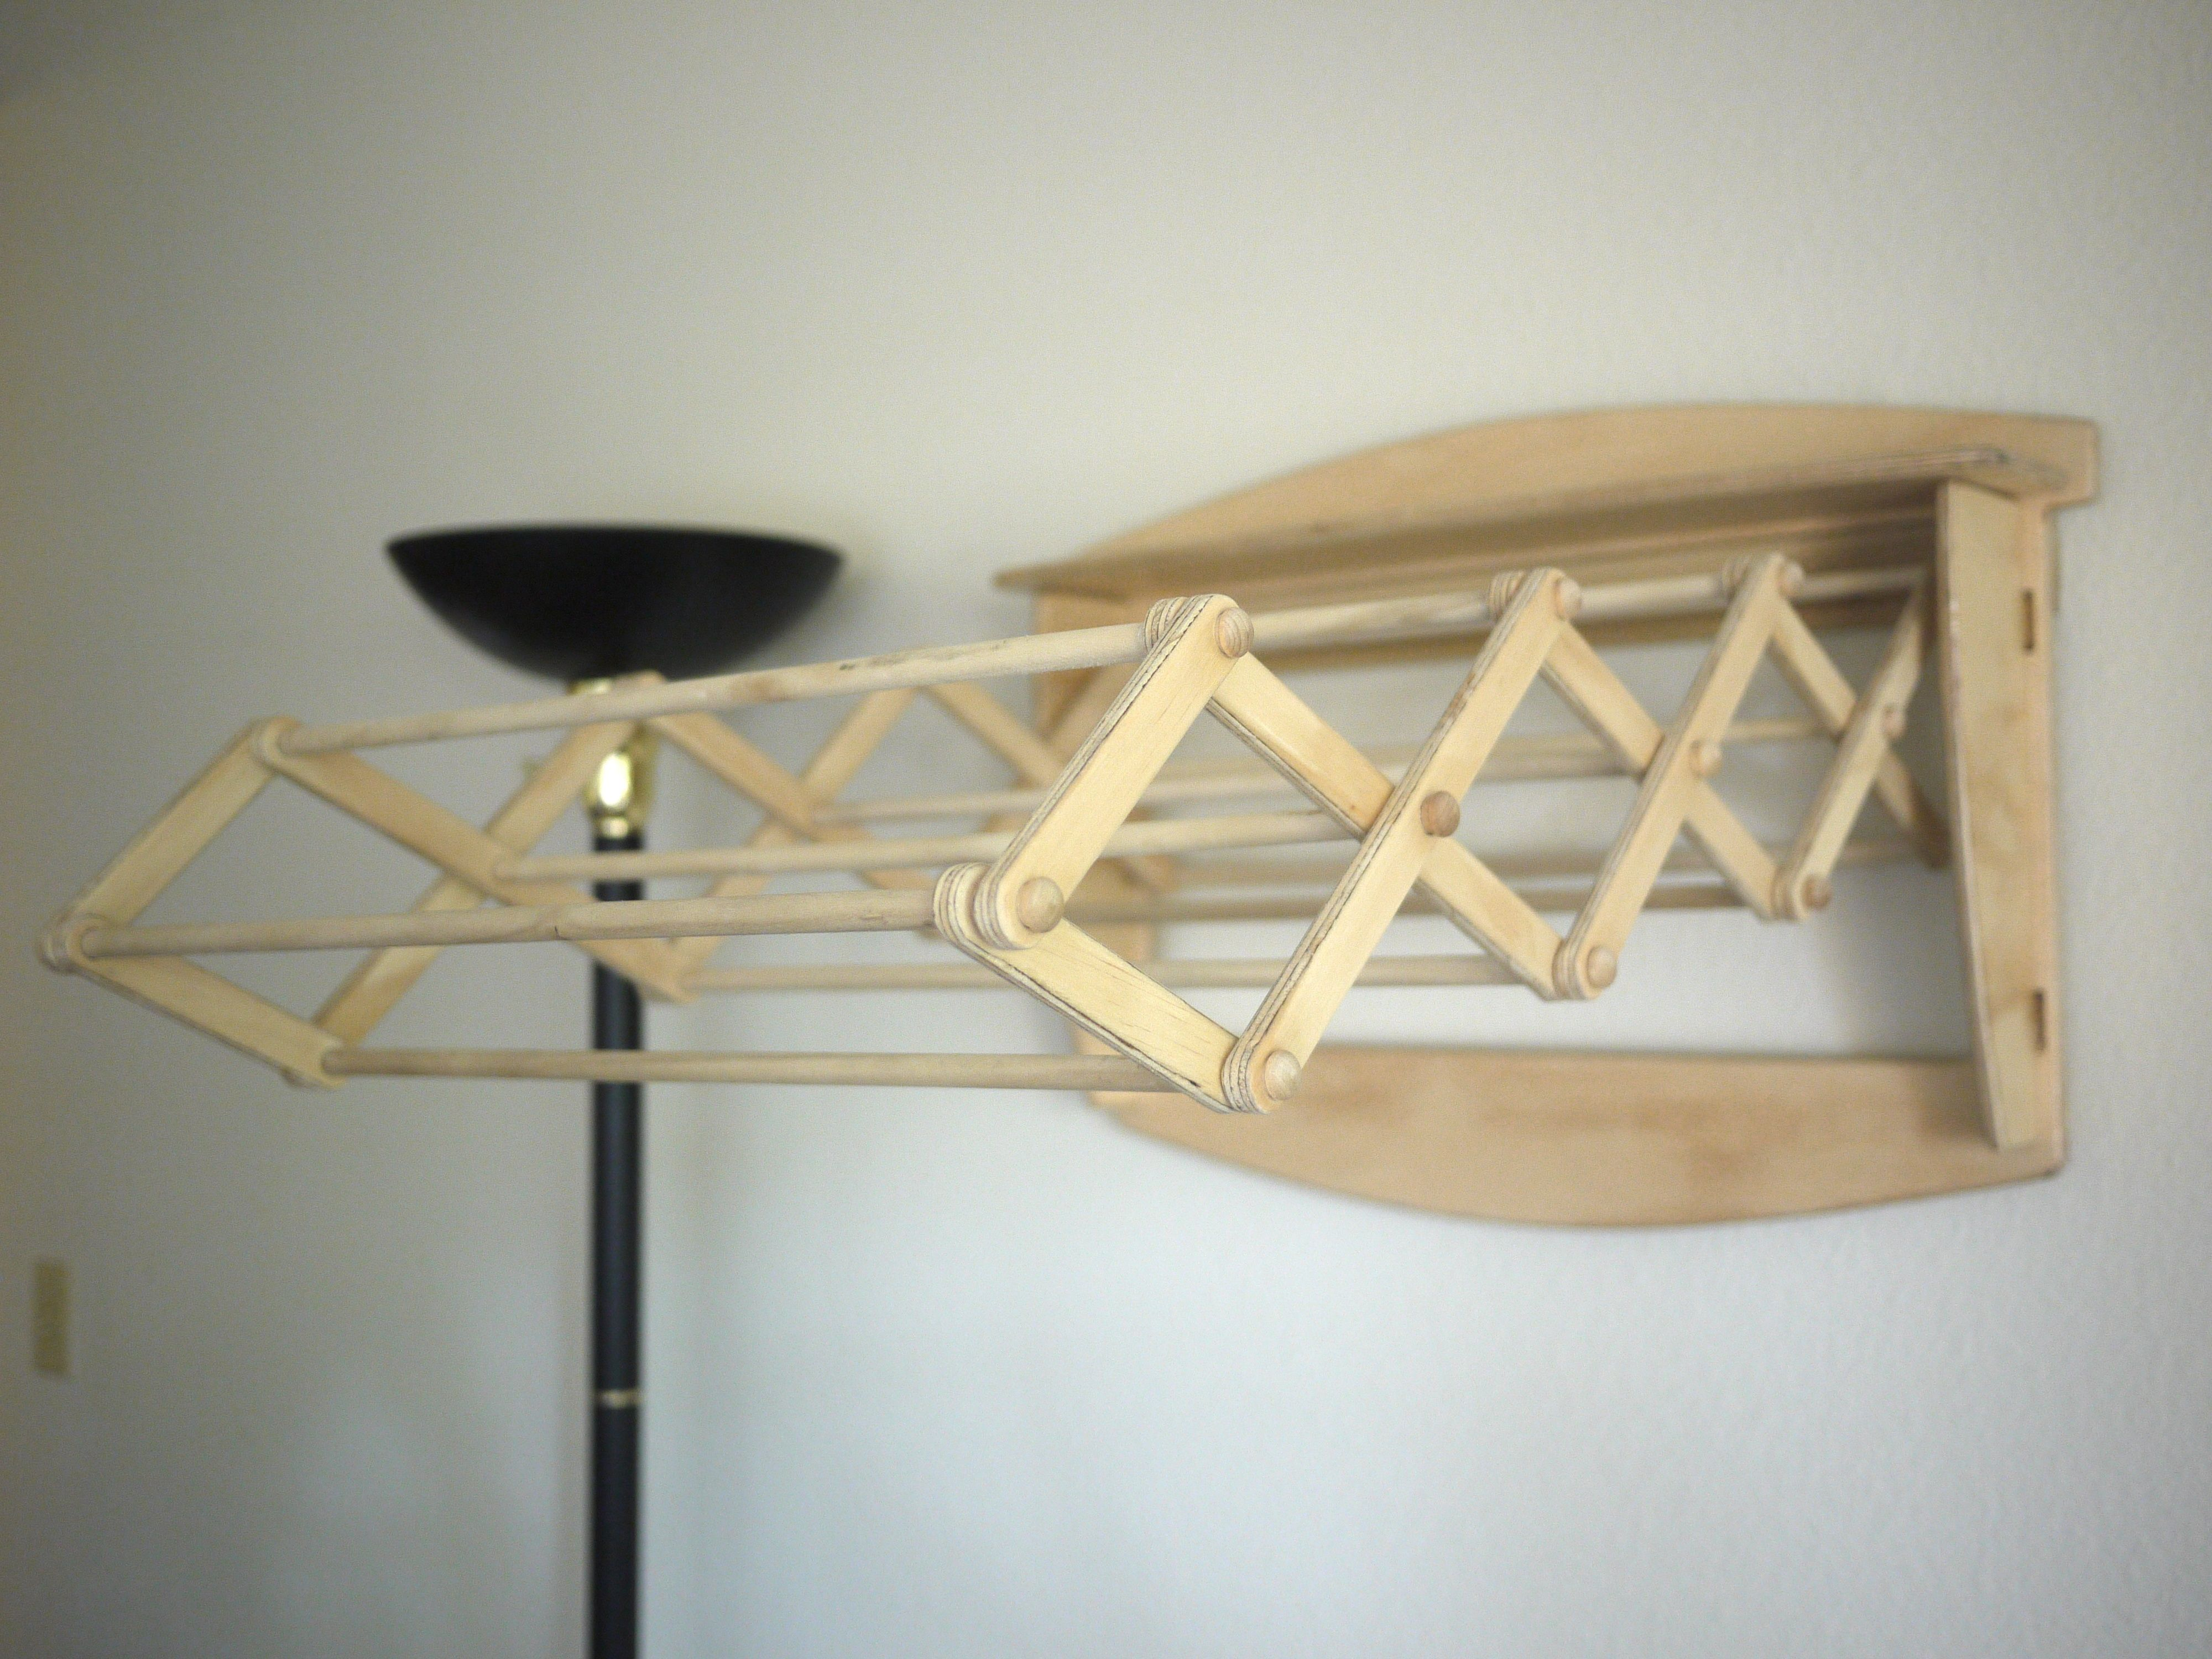 orig clothes mfgd tier tree loading zoom wooden primitive w paint dexter drying in pease rack white ma